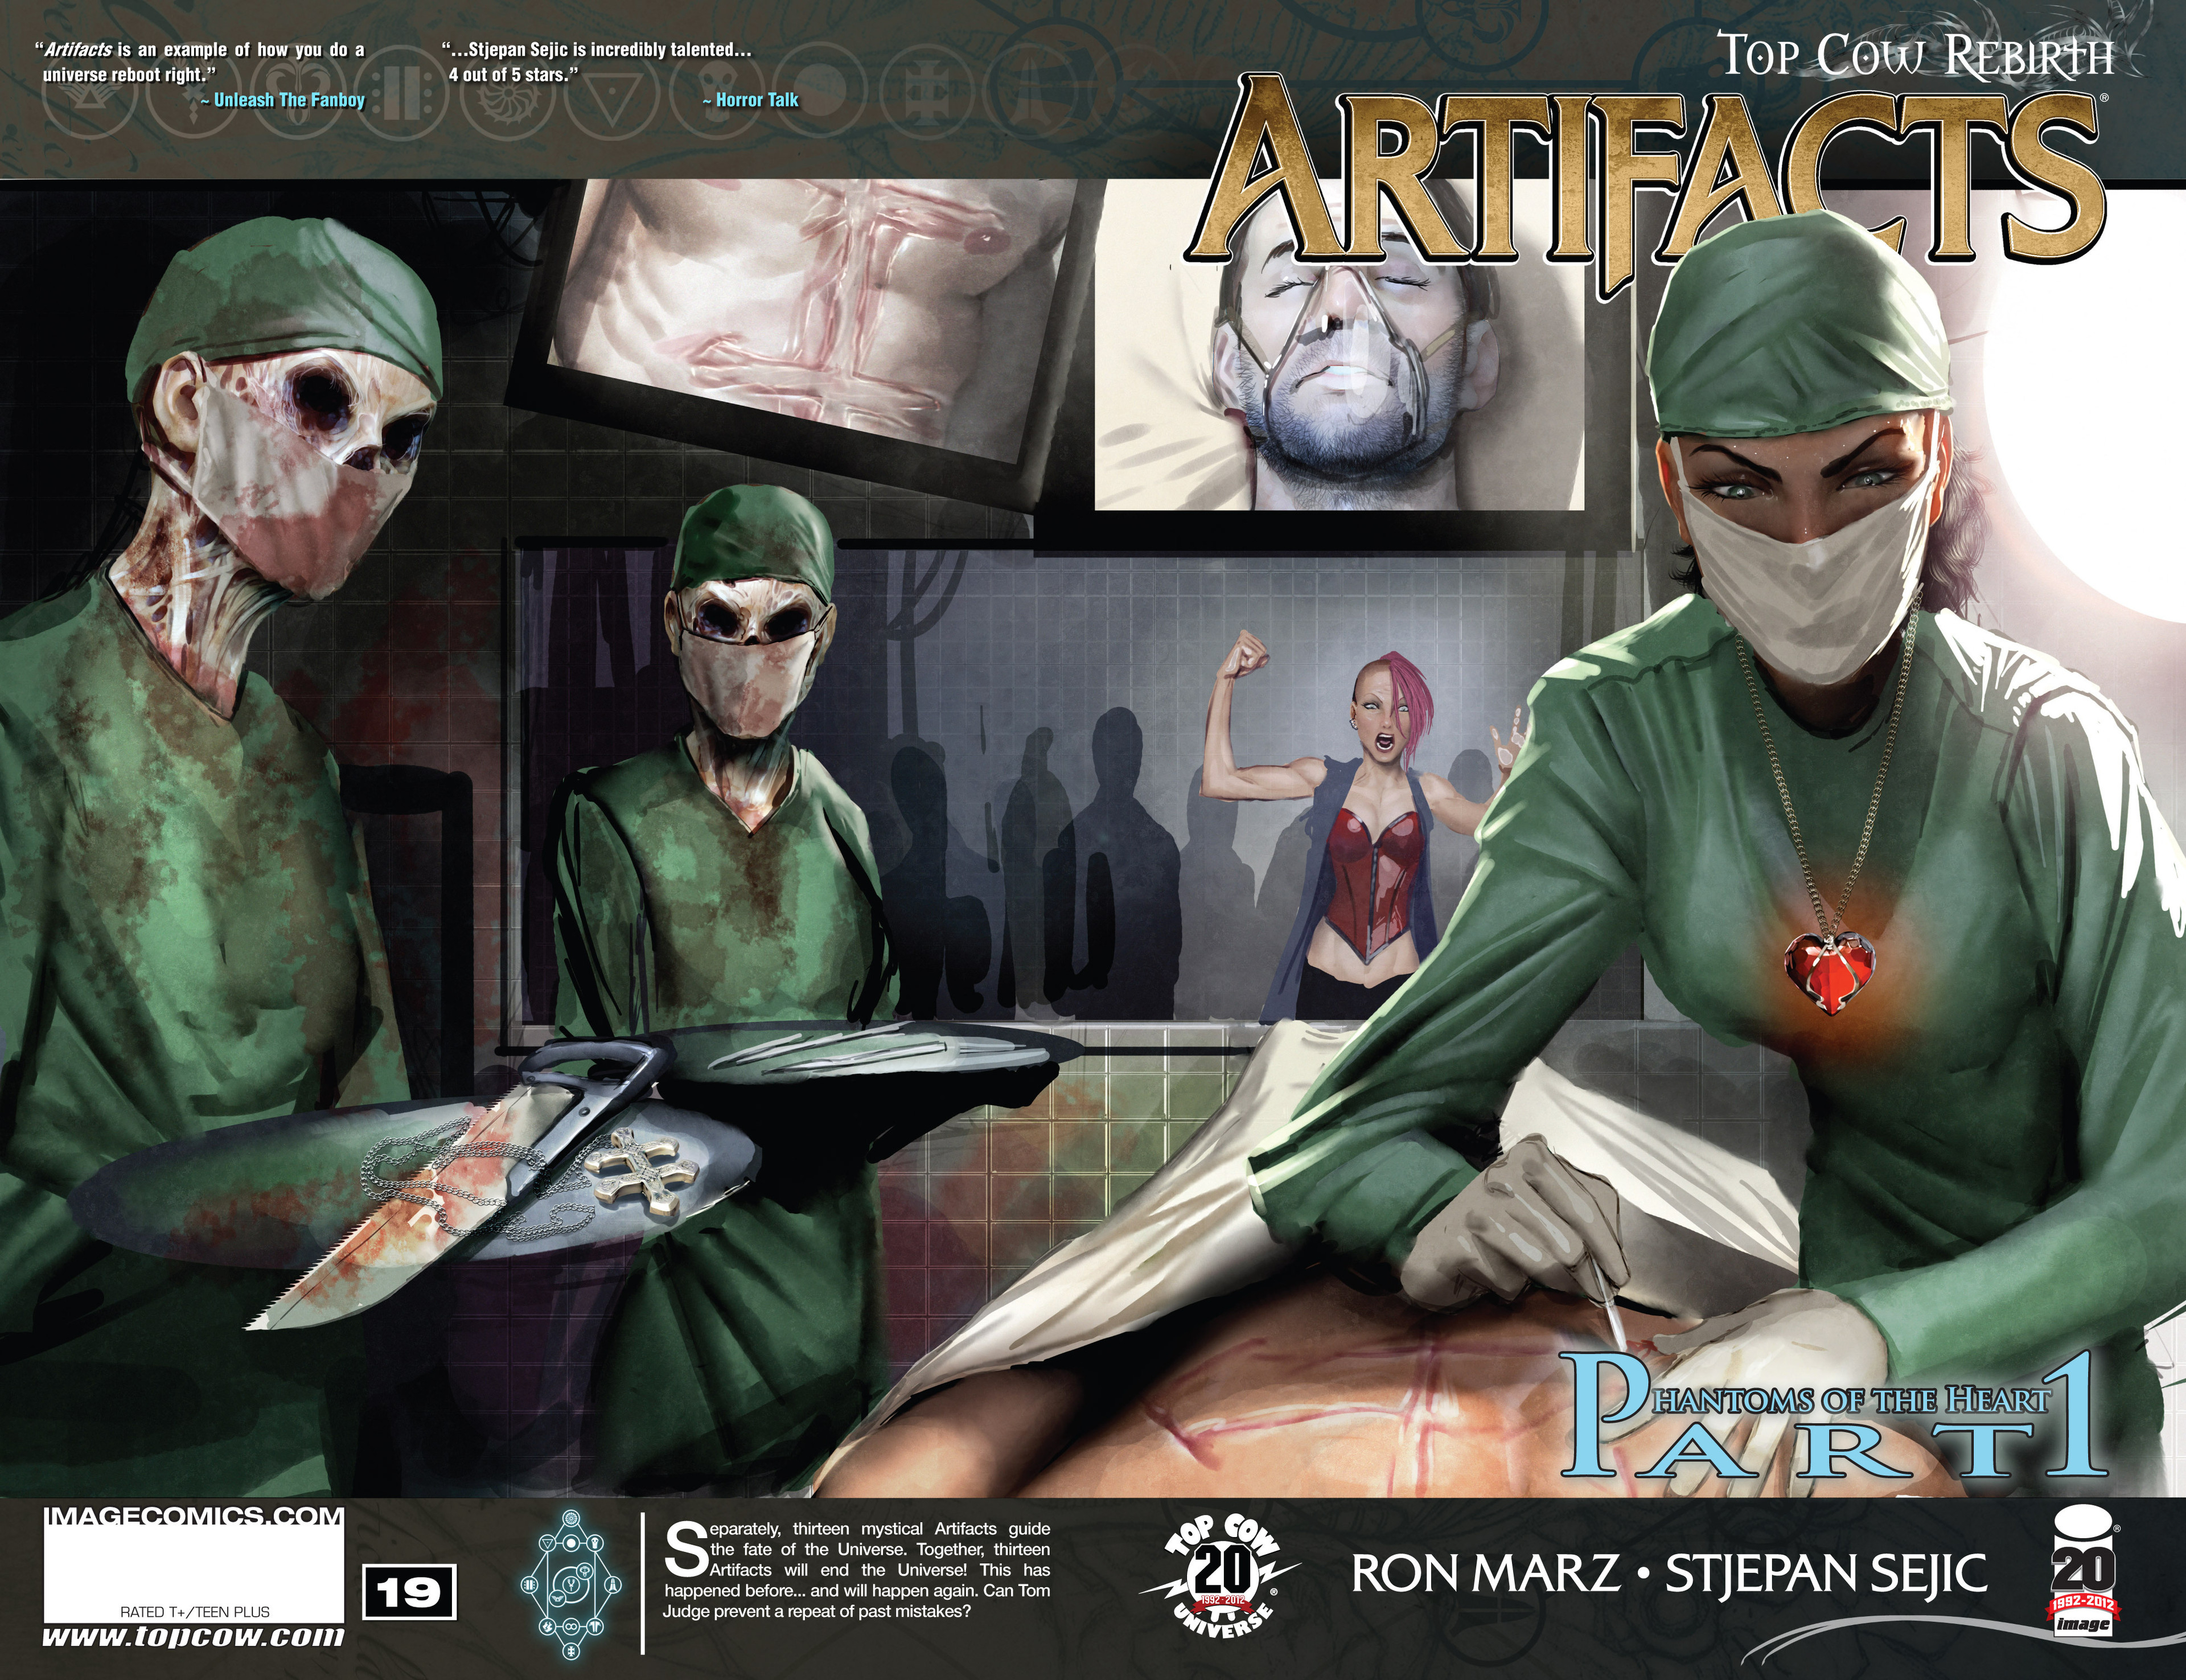 Read online Artifacts comic -  Issue #19 - 1